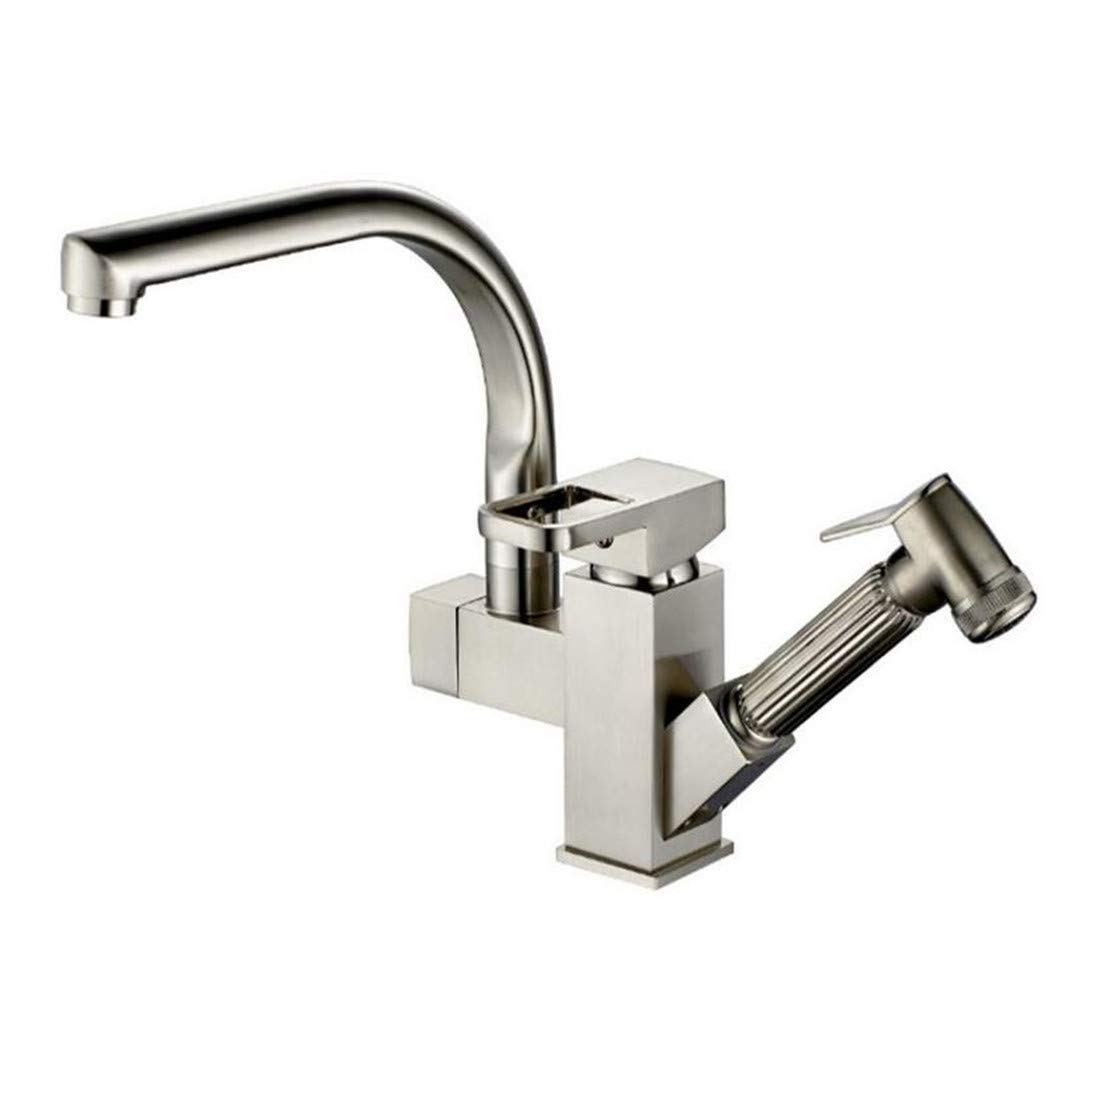 Modern Brass Chrome Hot and Cold Water All Copper and Nickel Wire Drawing Kitchen Kitchen Faucet Pull Deck Cold and Hot Water